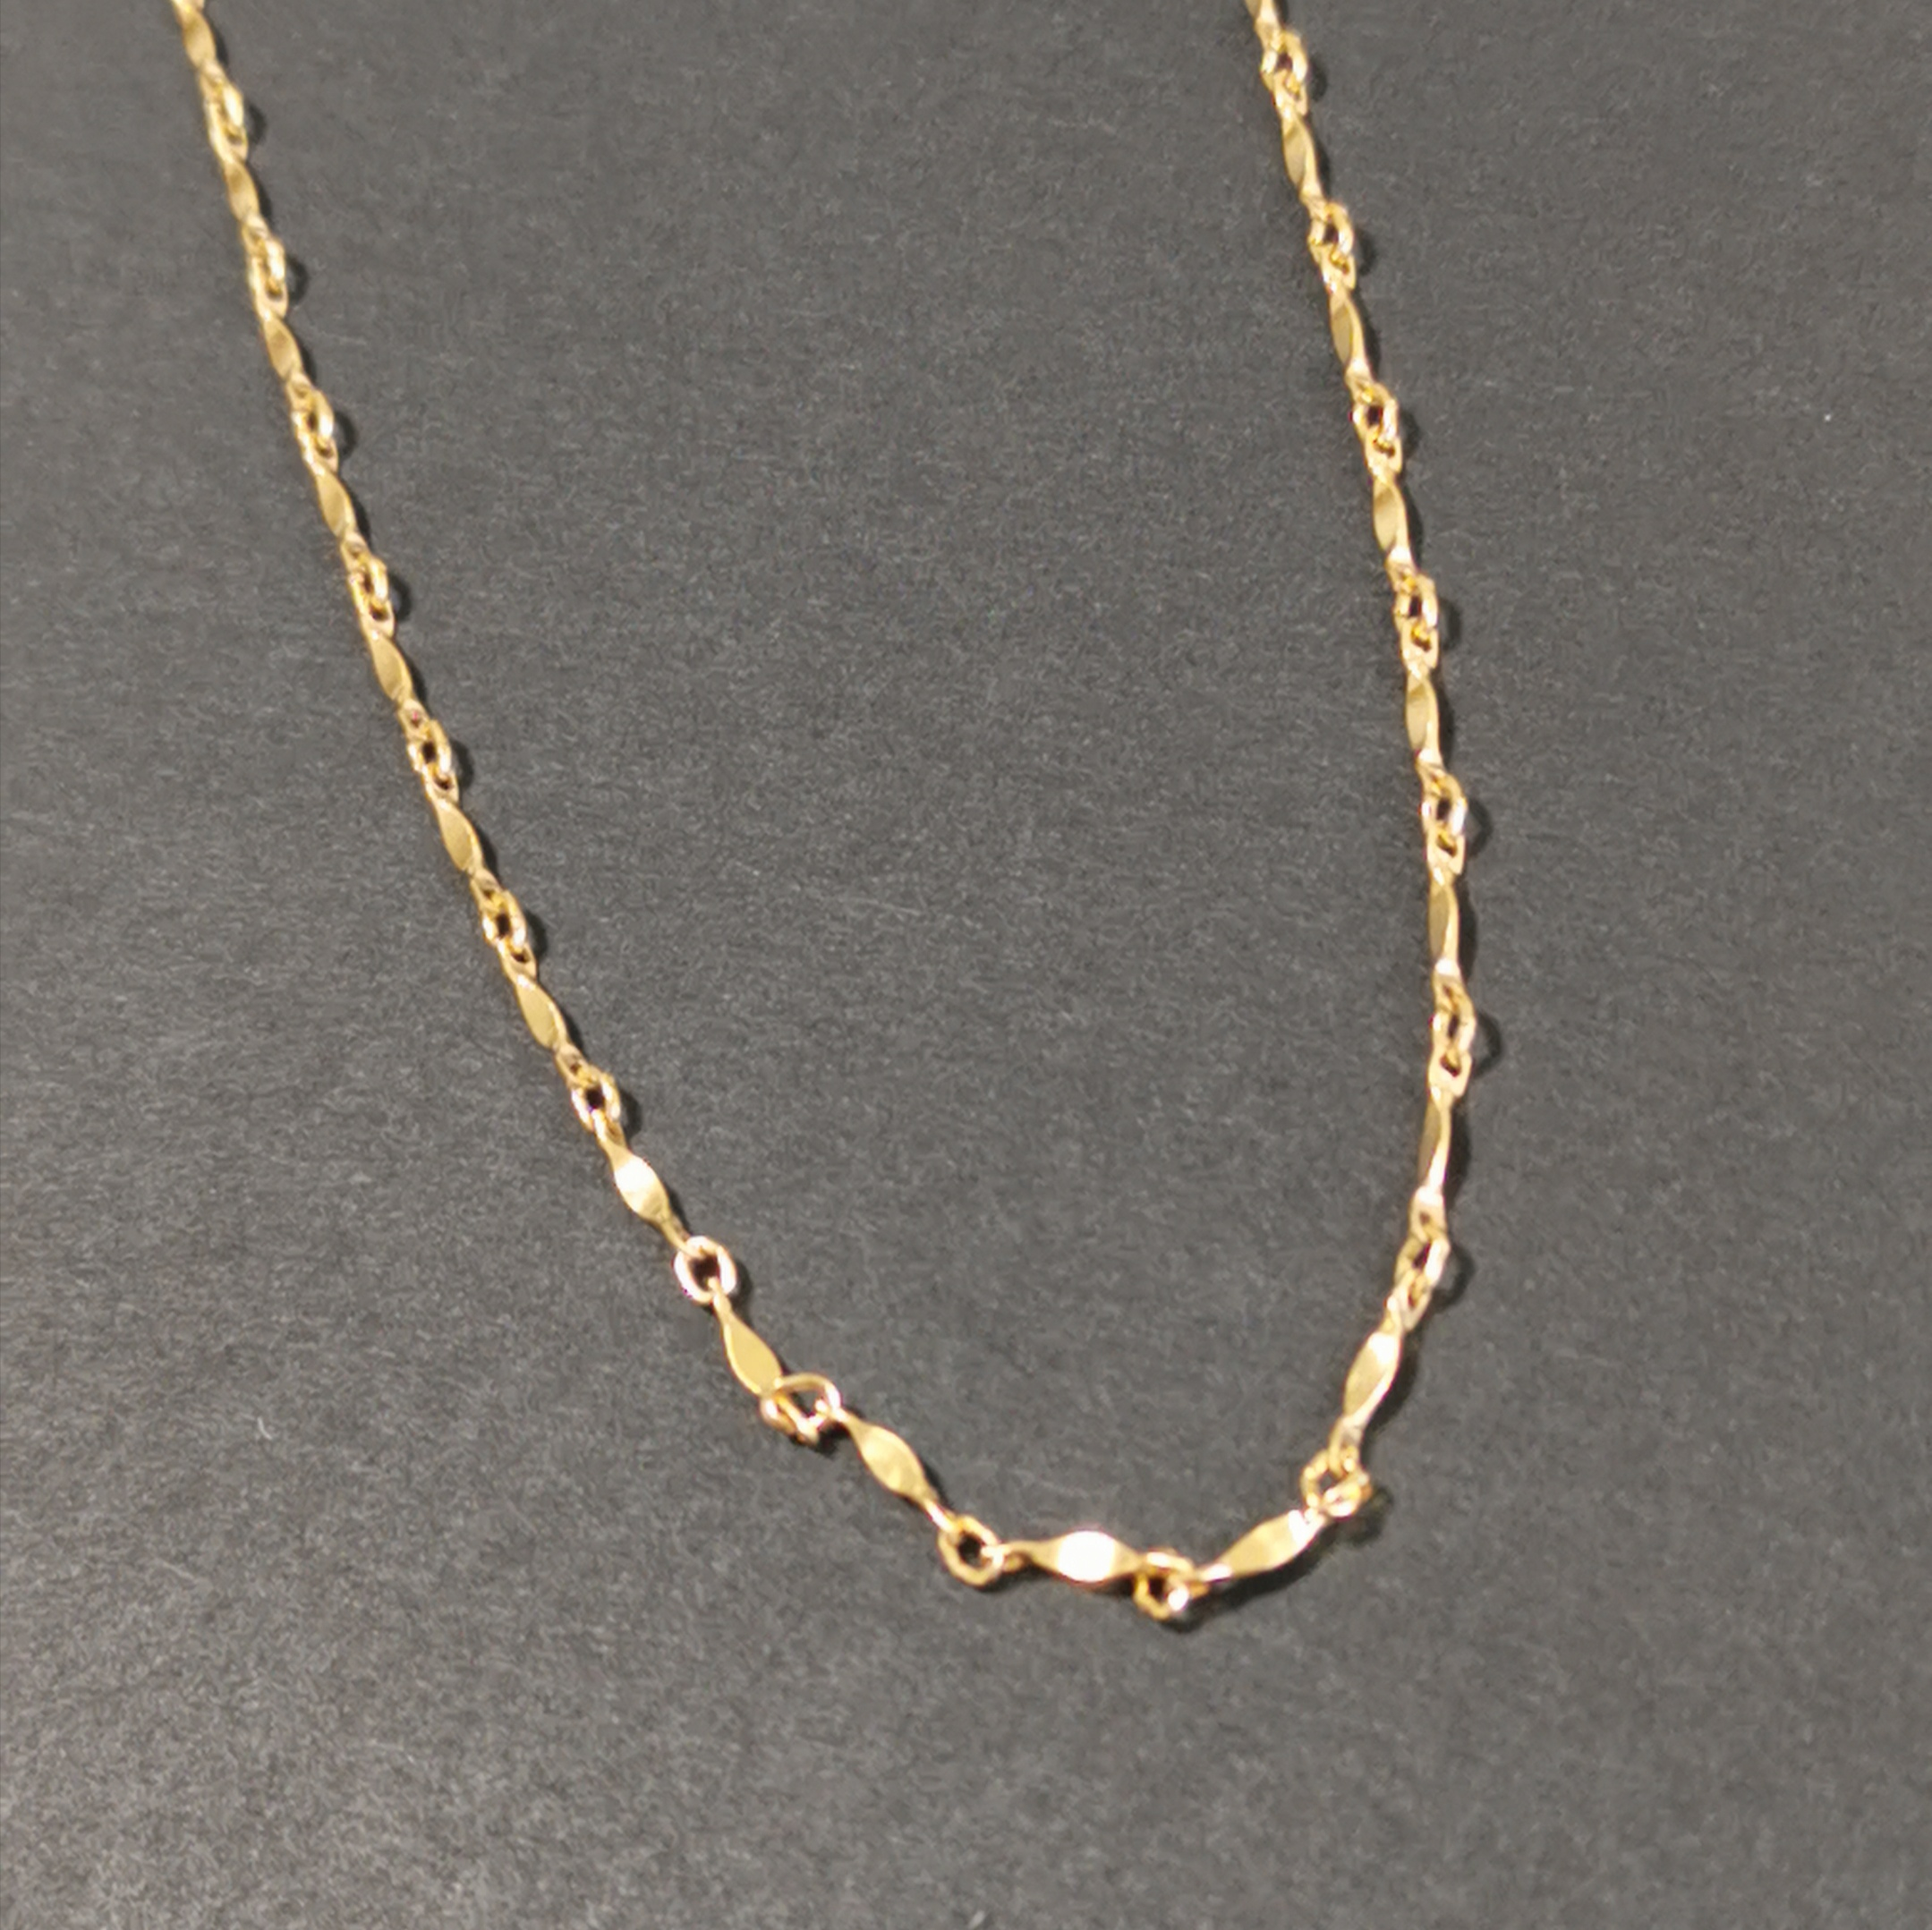 Chain 14kgf necklace